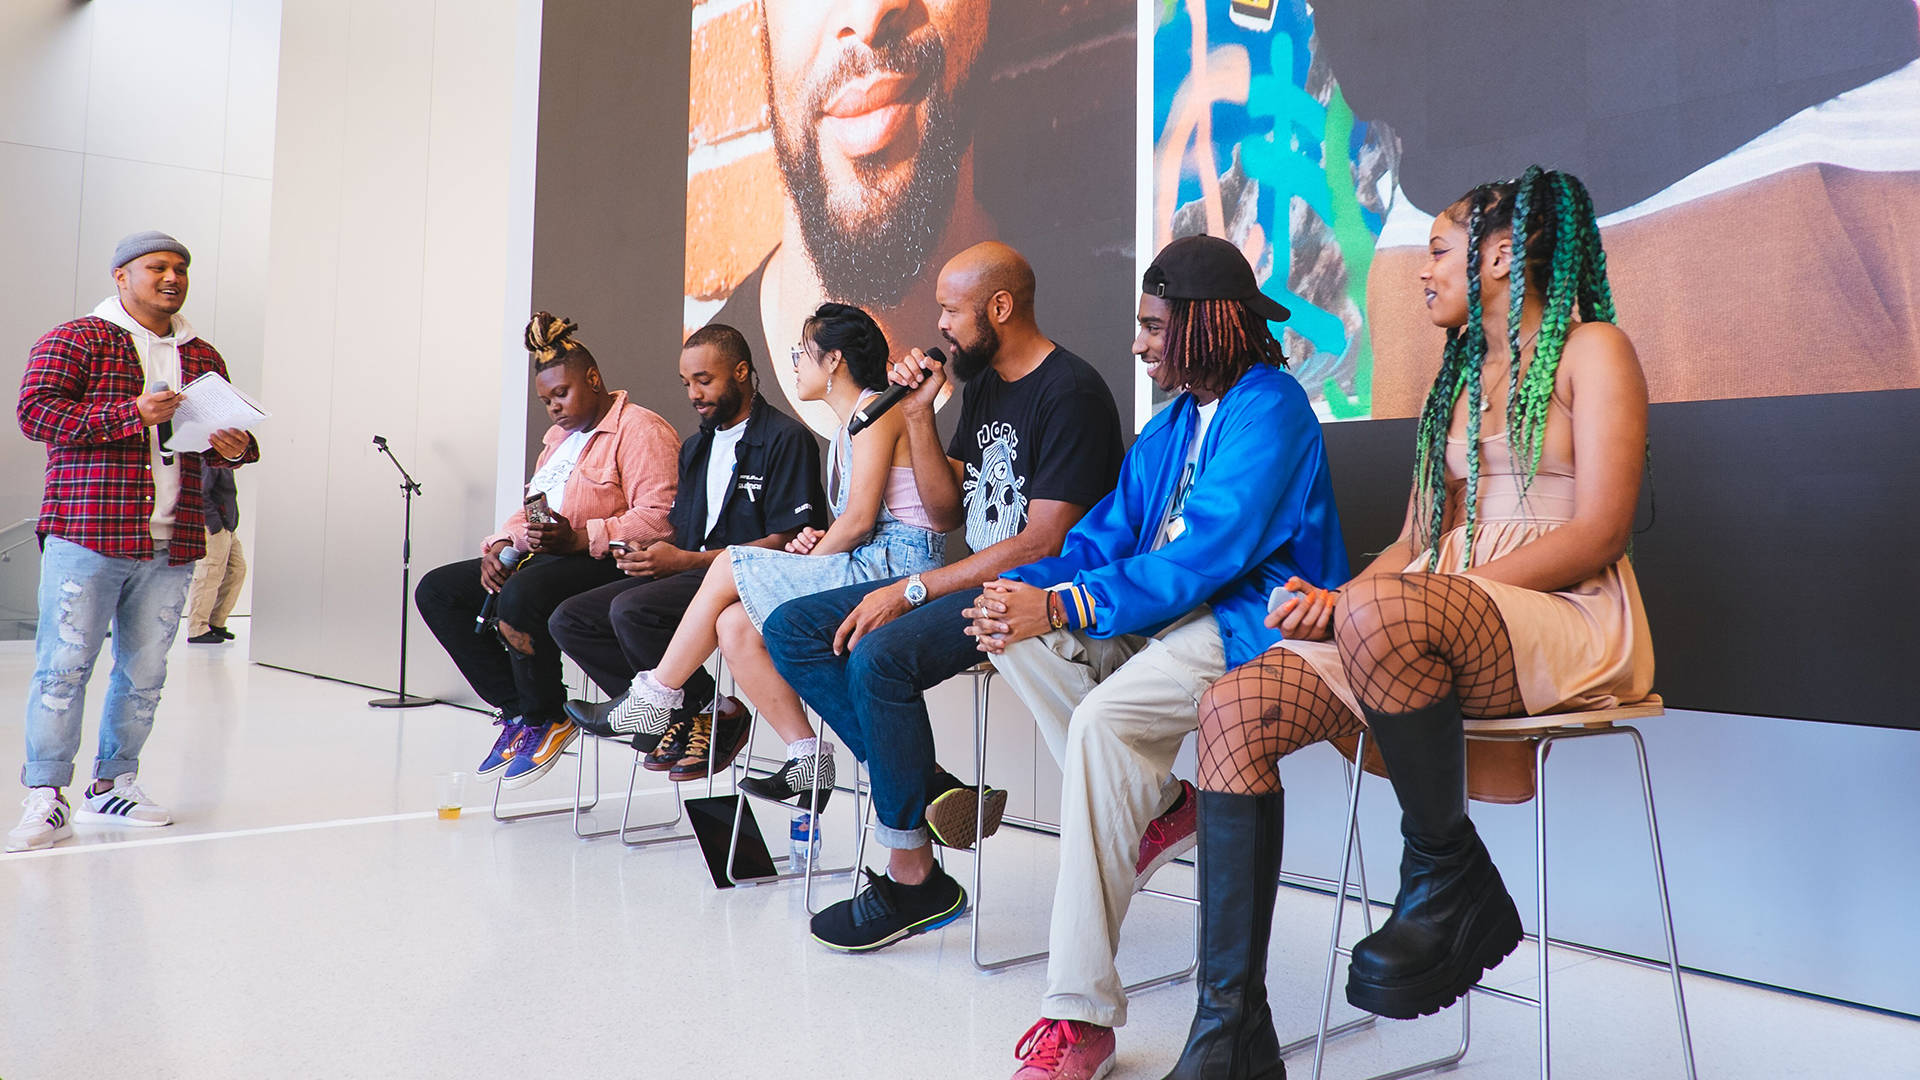 Creative collective Le Vanguard performed and did a panel discussion at the Apple store in Union Square in August 2018. Kristian Contreras/YK La Familia